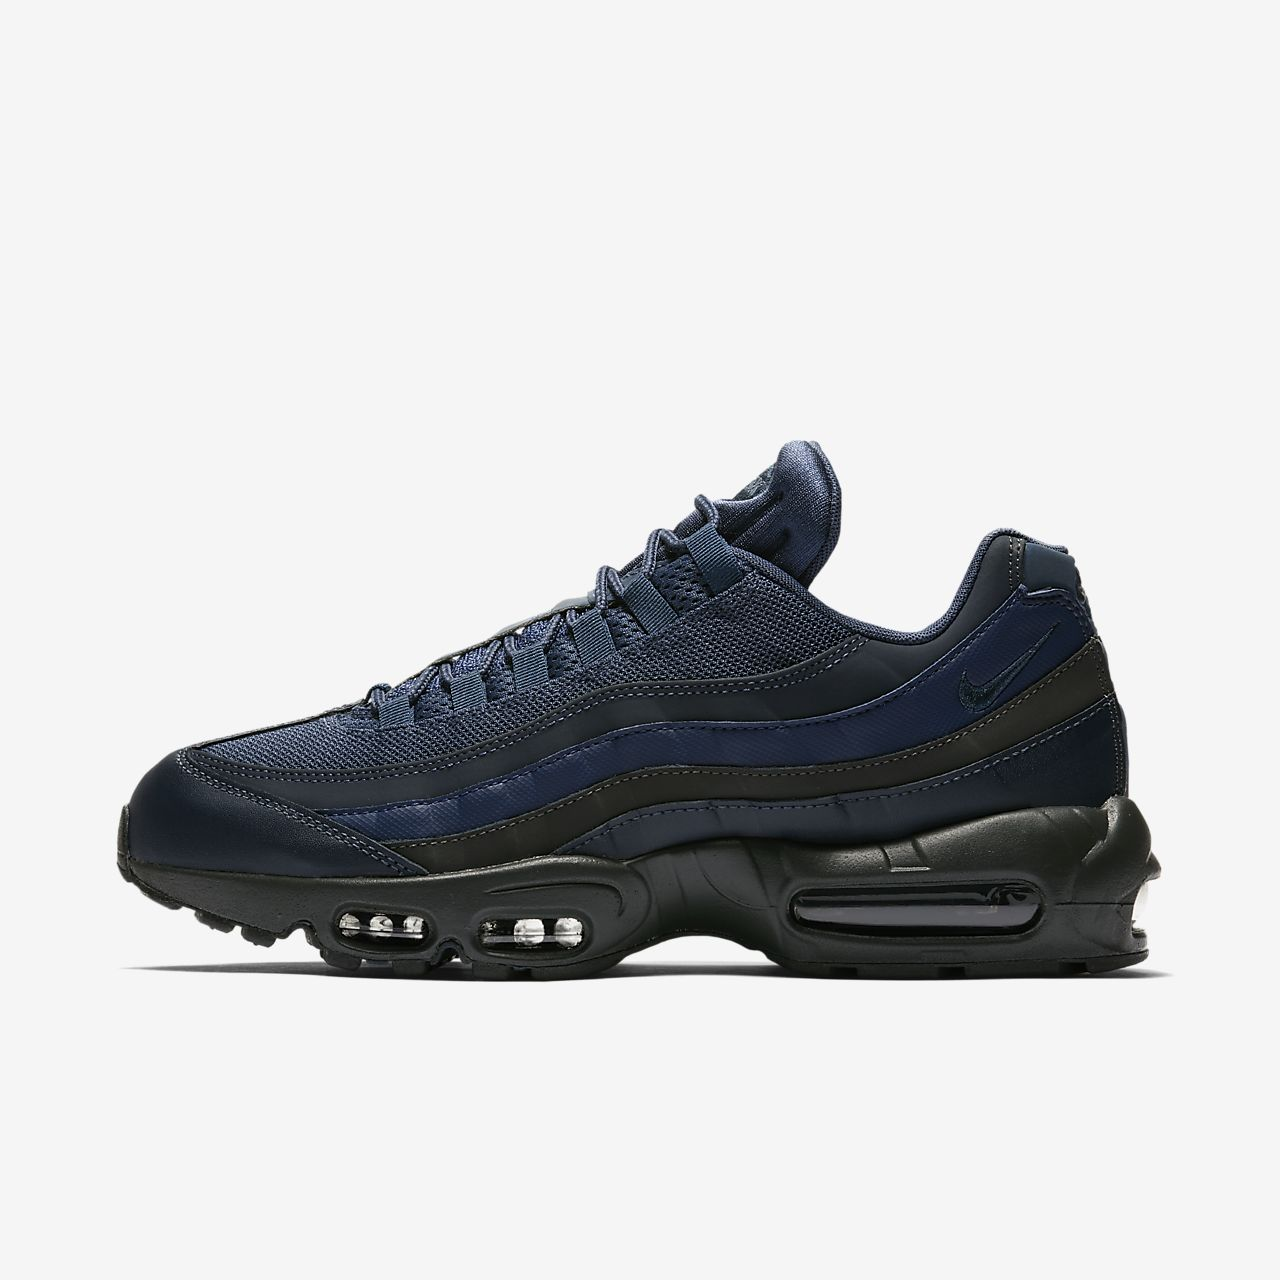 official photos bebf4 ea318 Nike Air Max 95 Essential